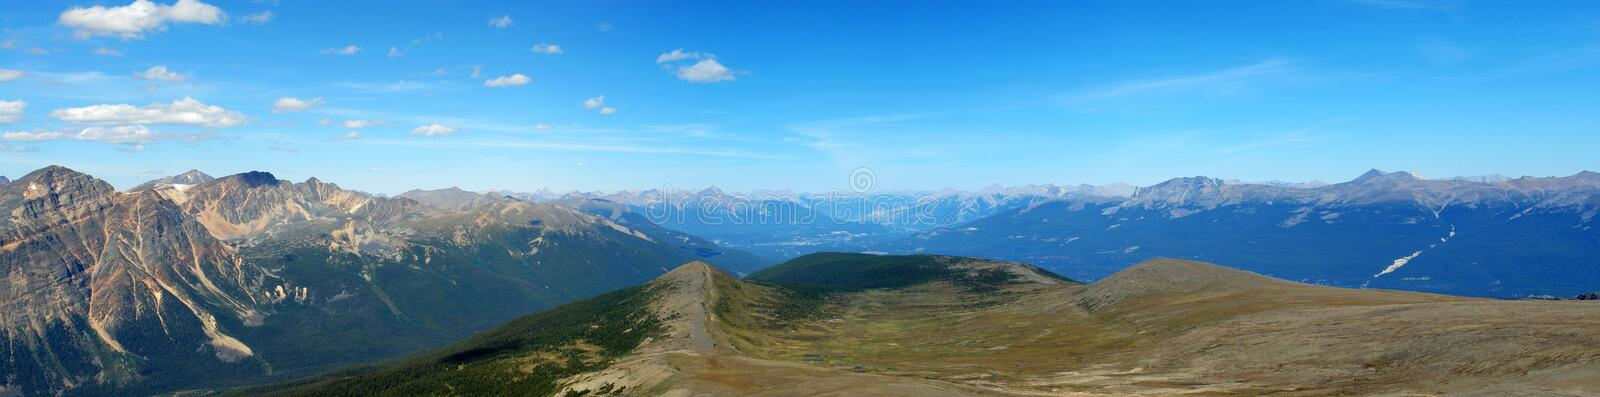 Panorama des montagnes rocheuses images stock